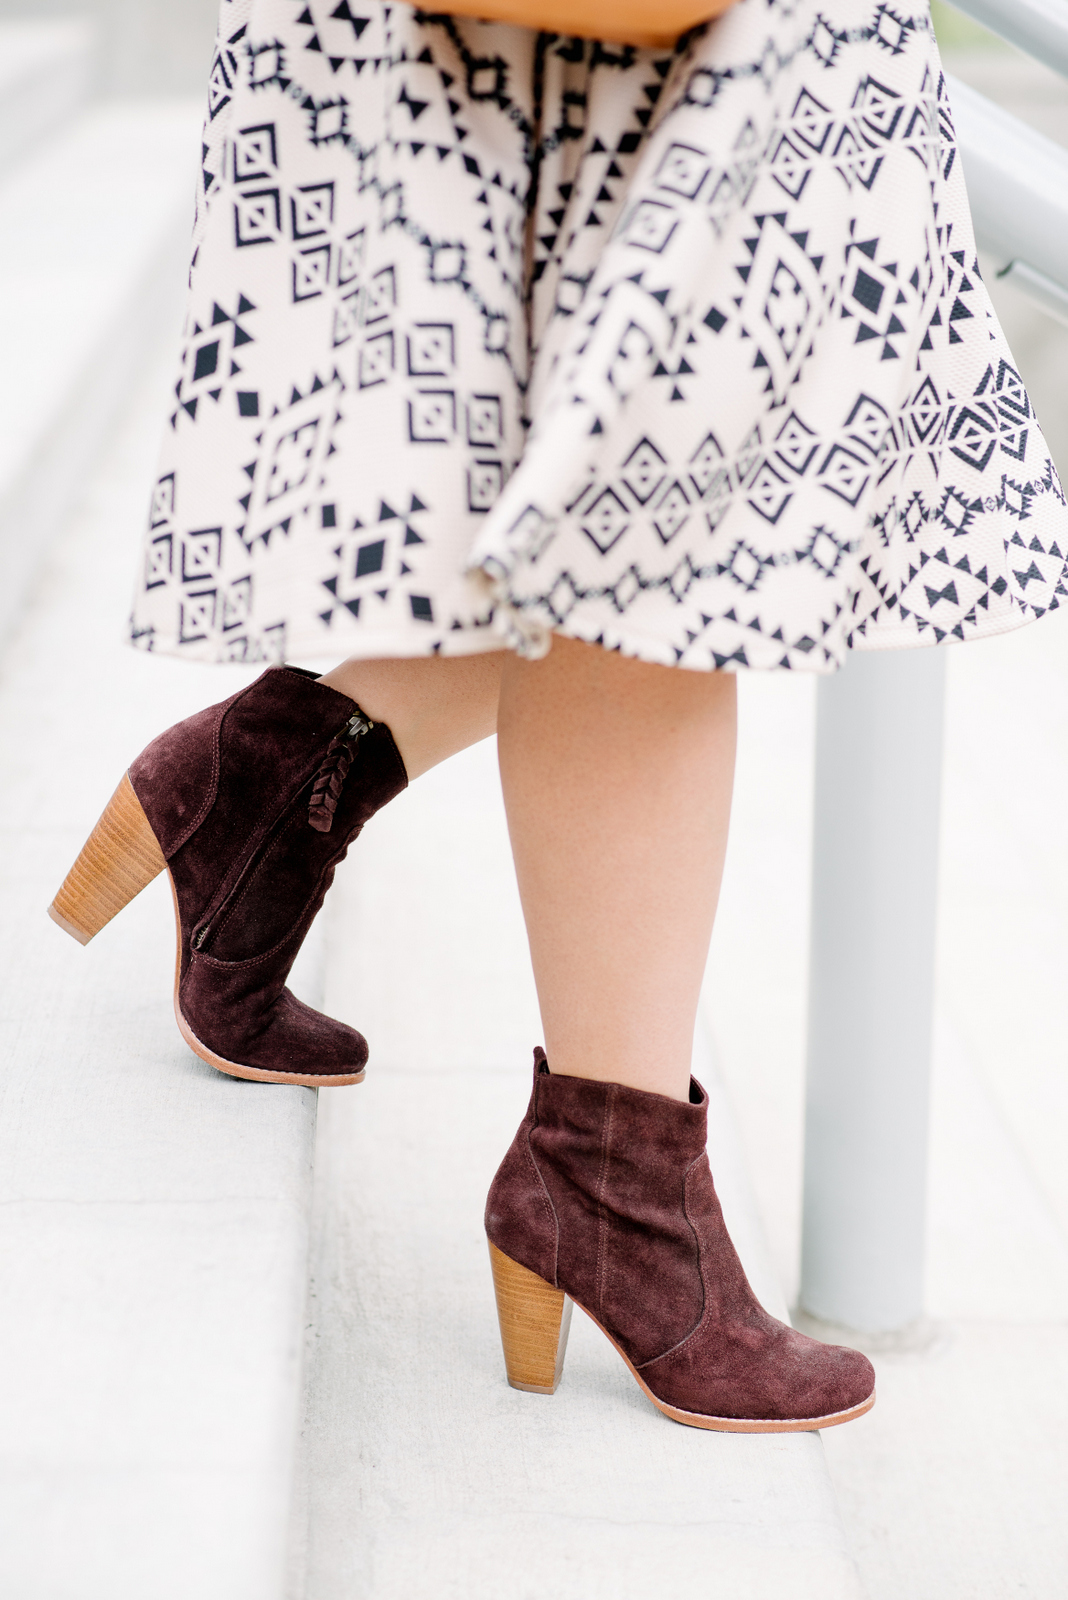 midi skirt with joie boots